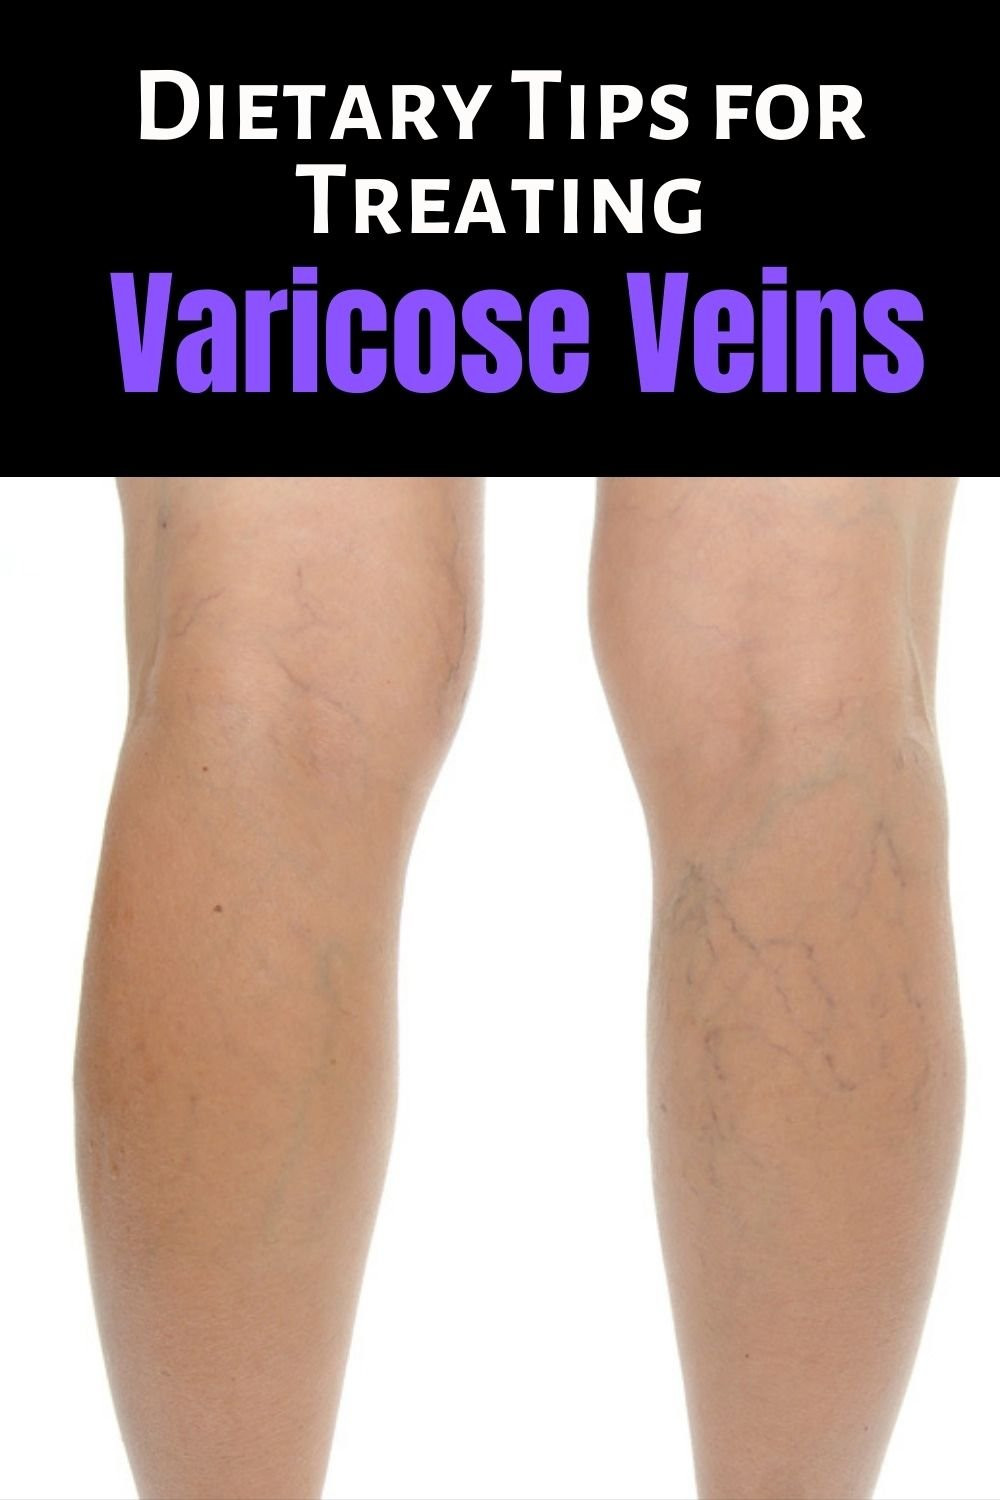 Dietary Tips for Treating Varicose Veins Faster